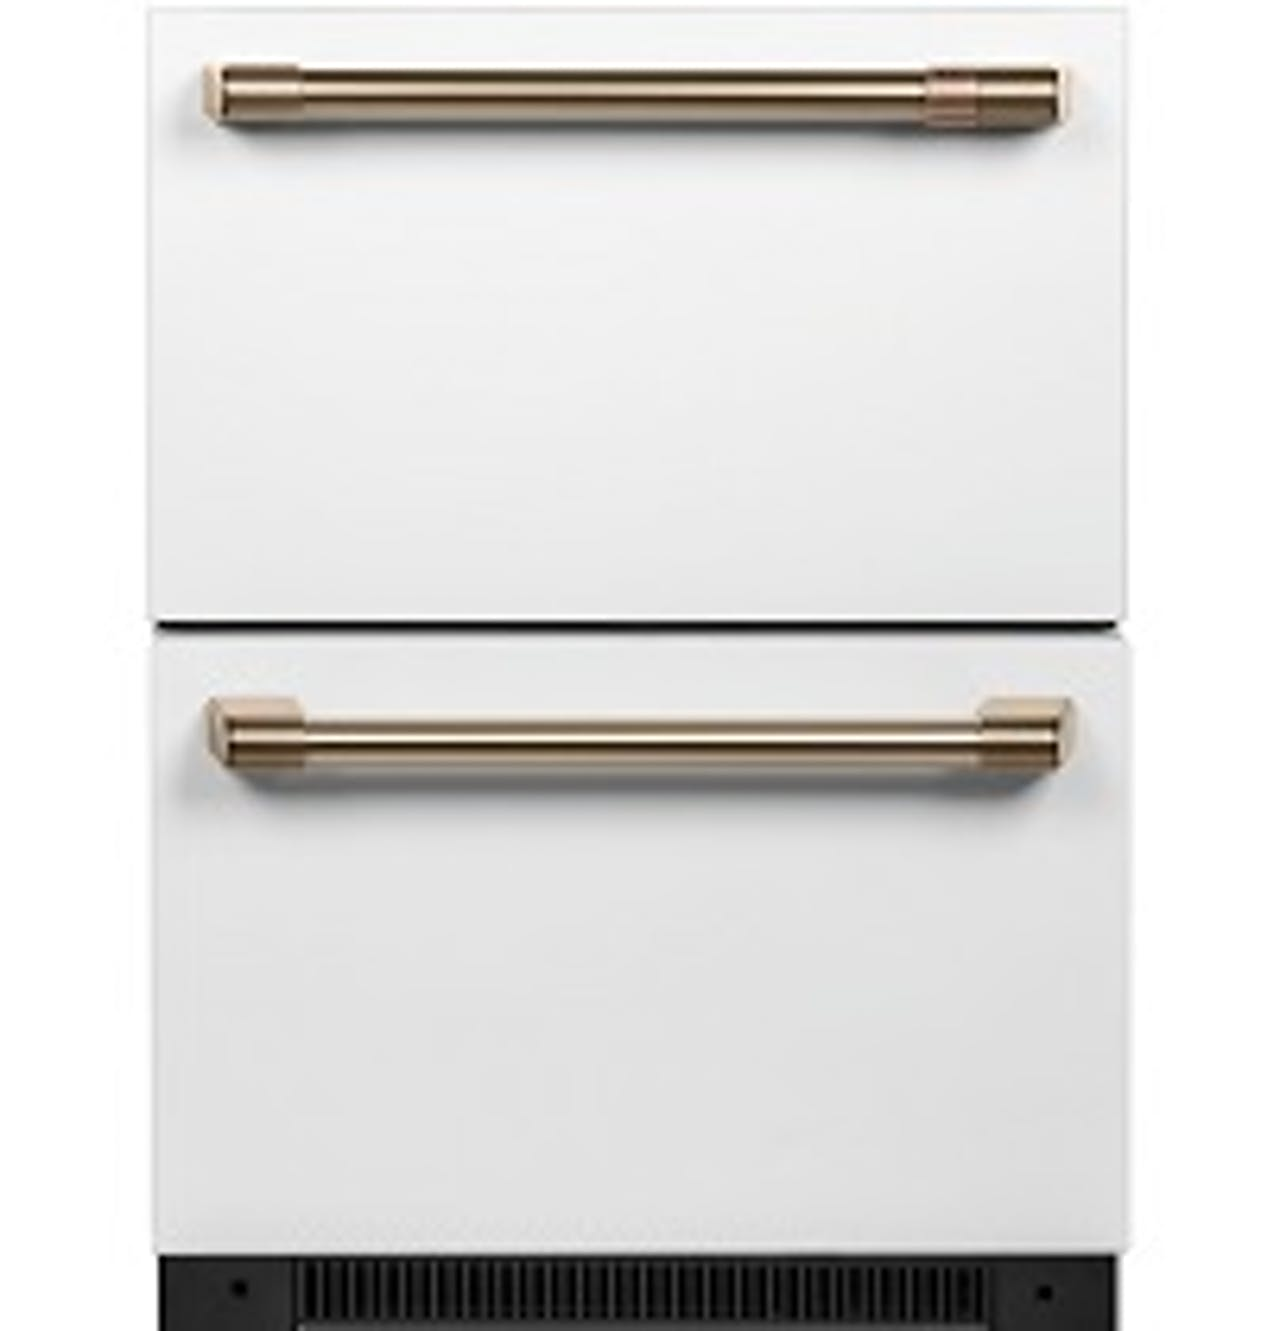 Dual Drawer Refrigeration